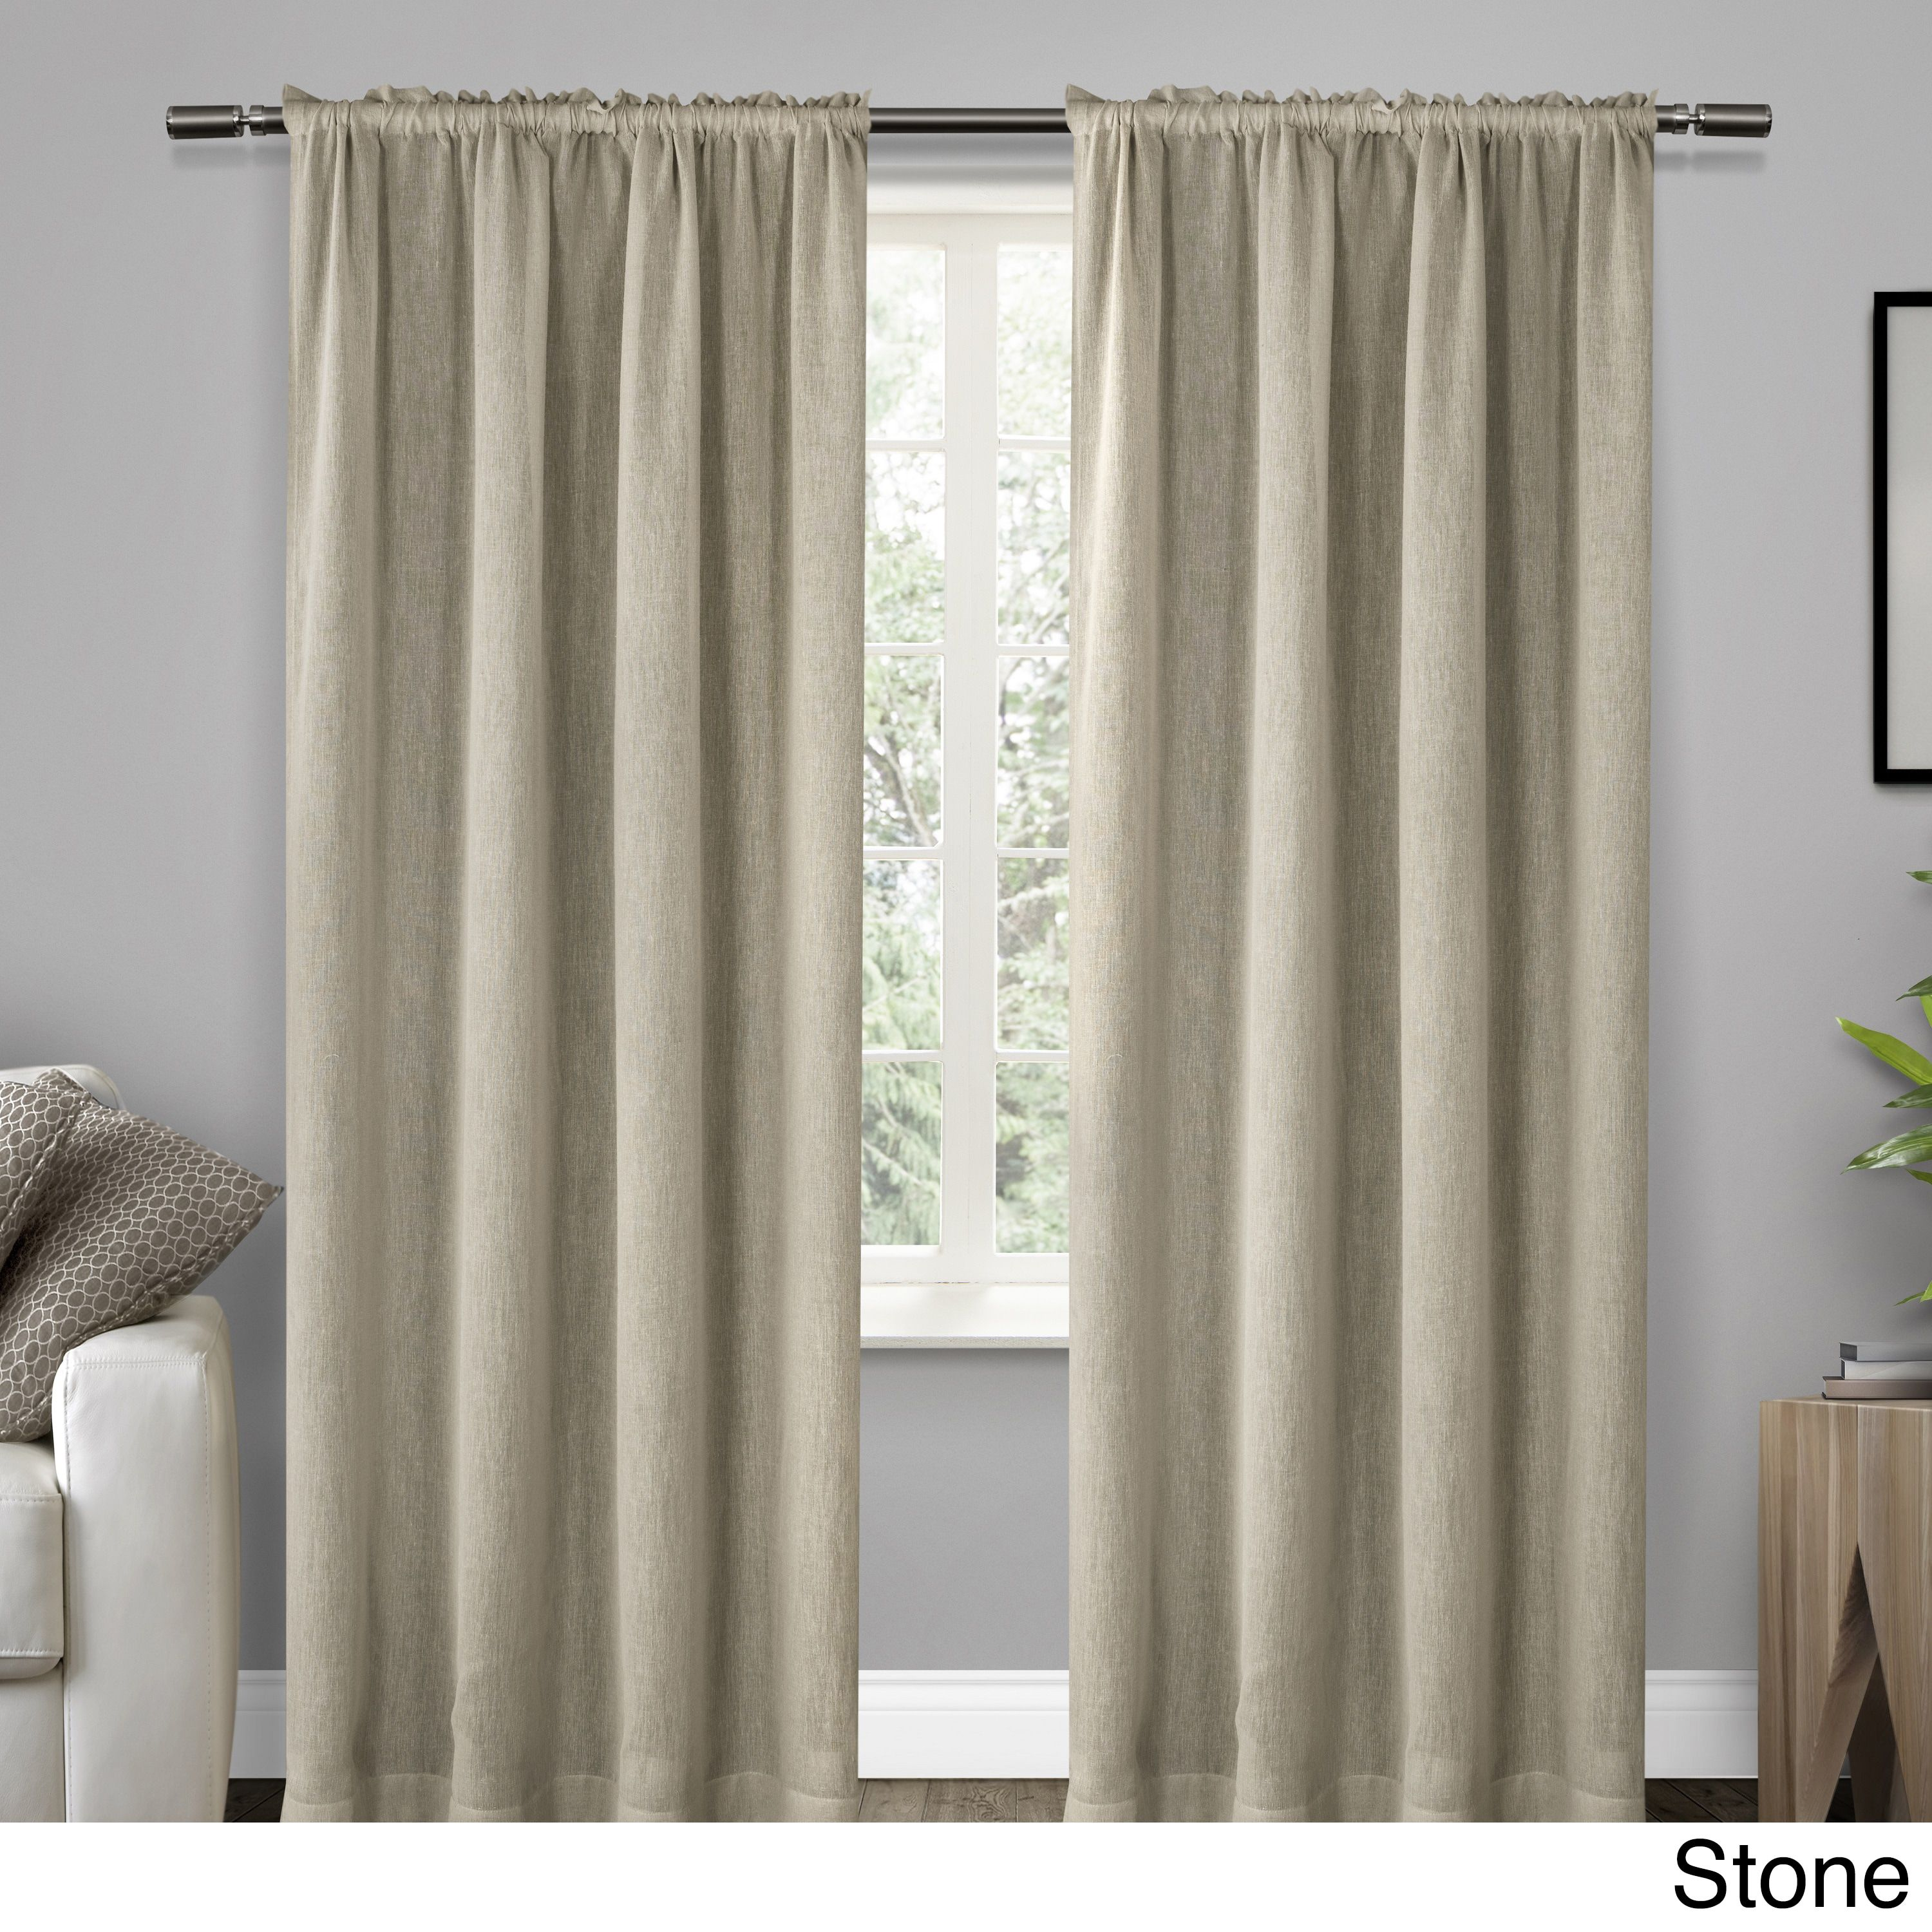 ATI Home Belgian Textured Rod Pocket Curtain Panel Pair (84 Inches ... for Off White Curtains Texture  55nar